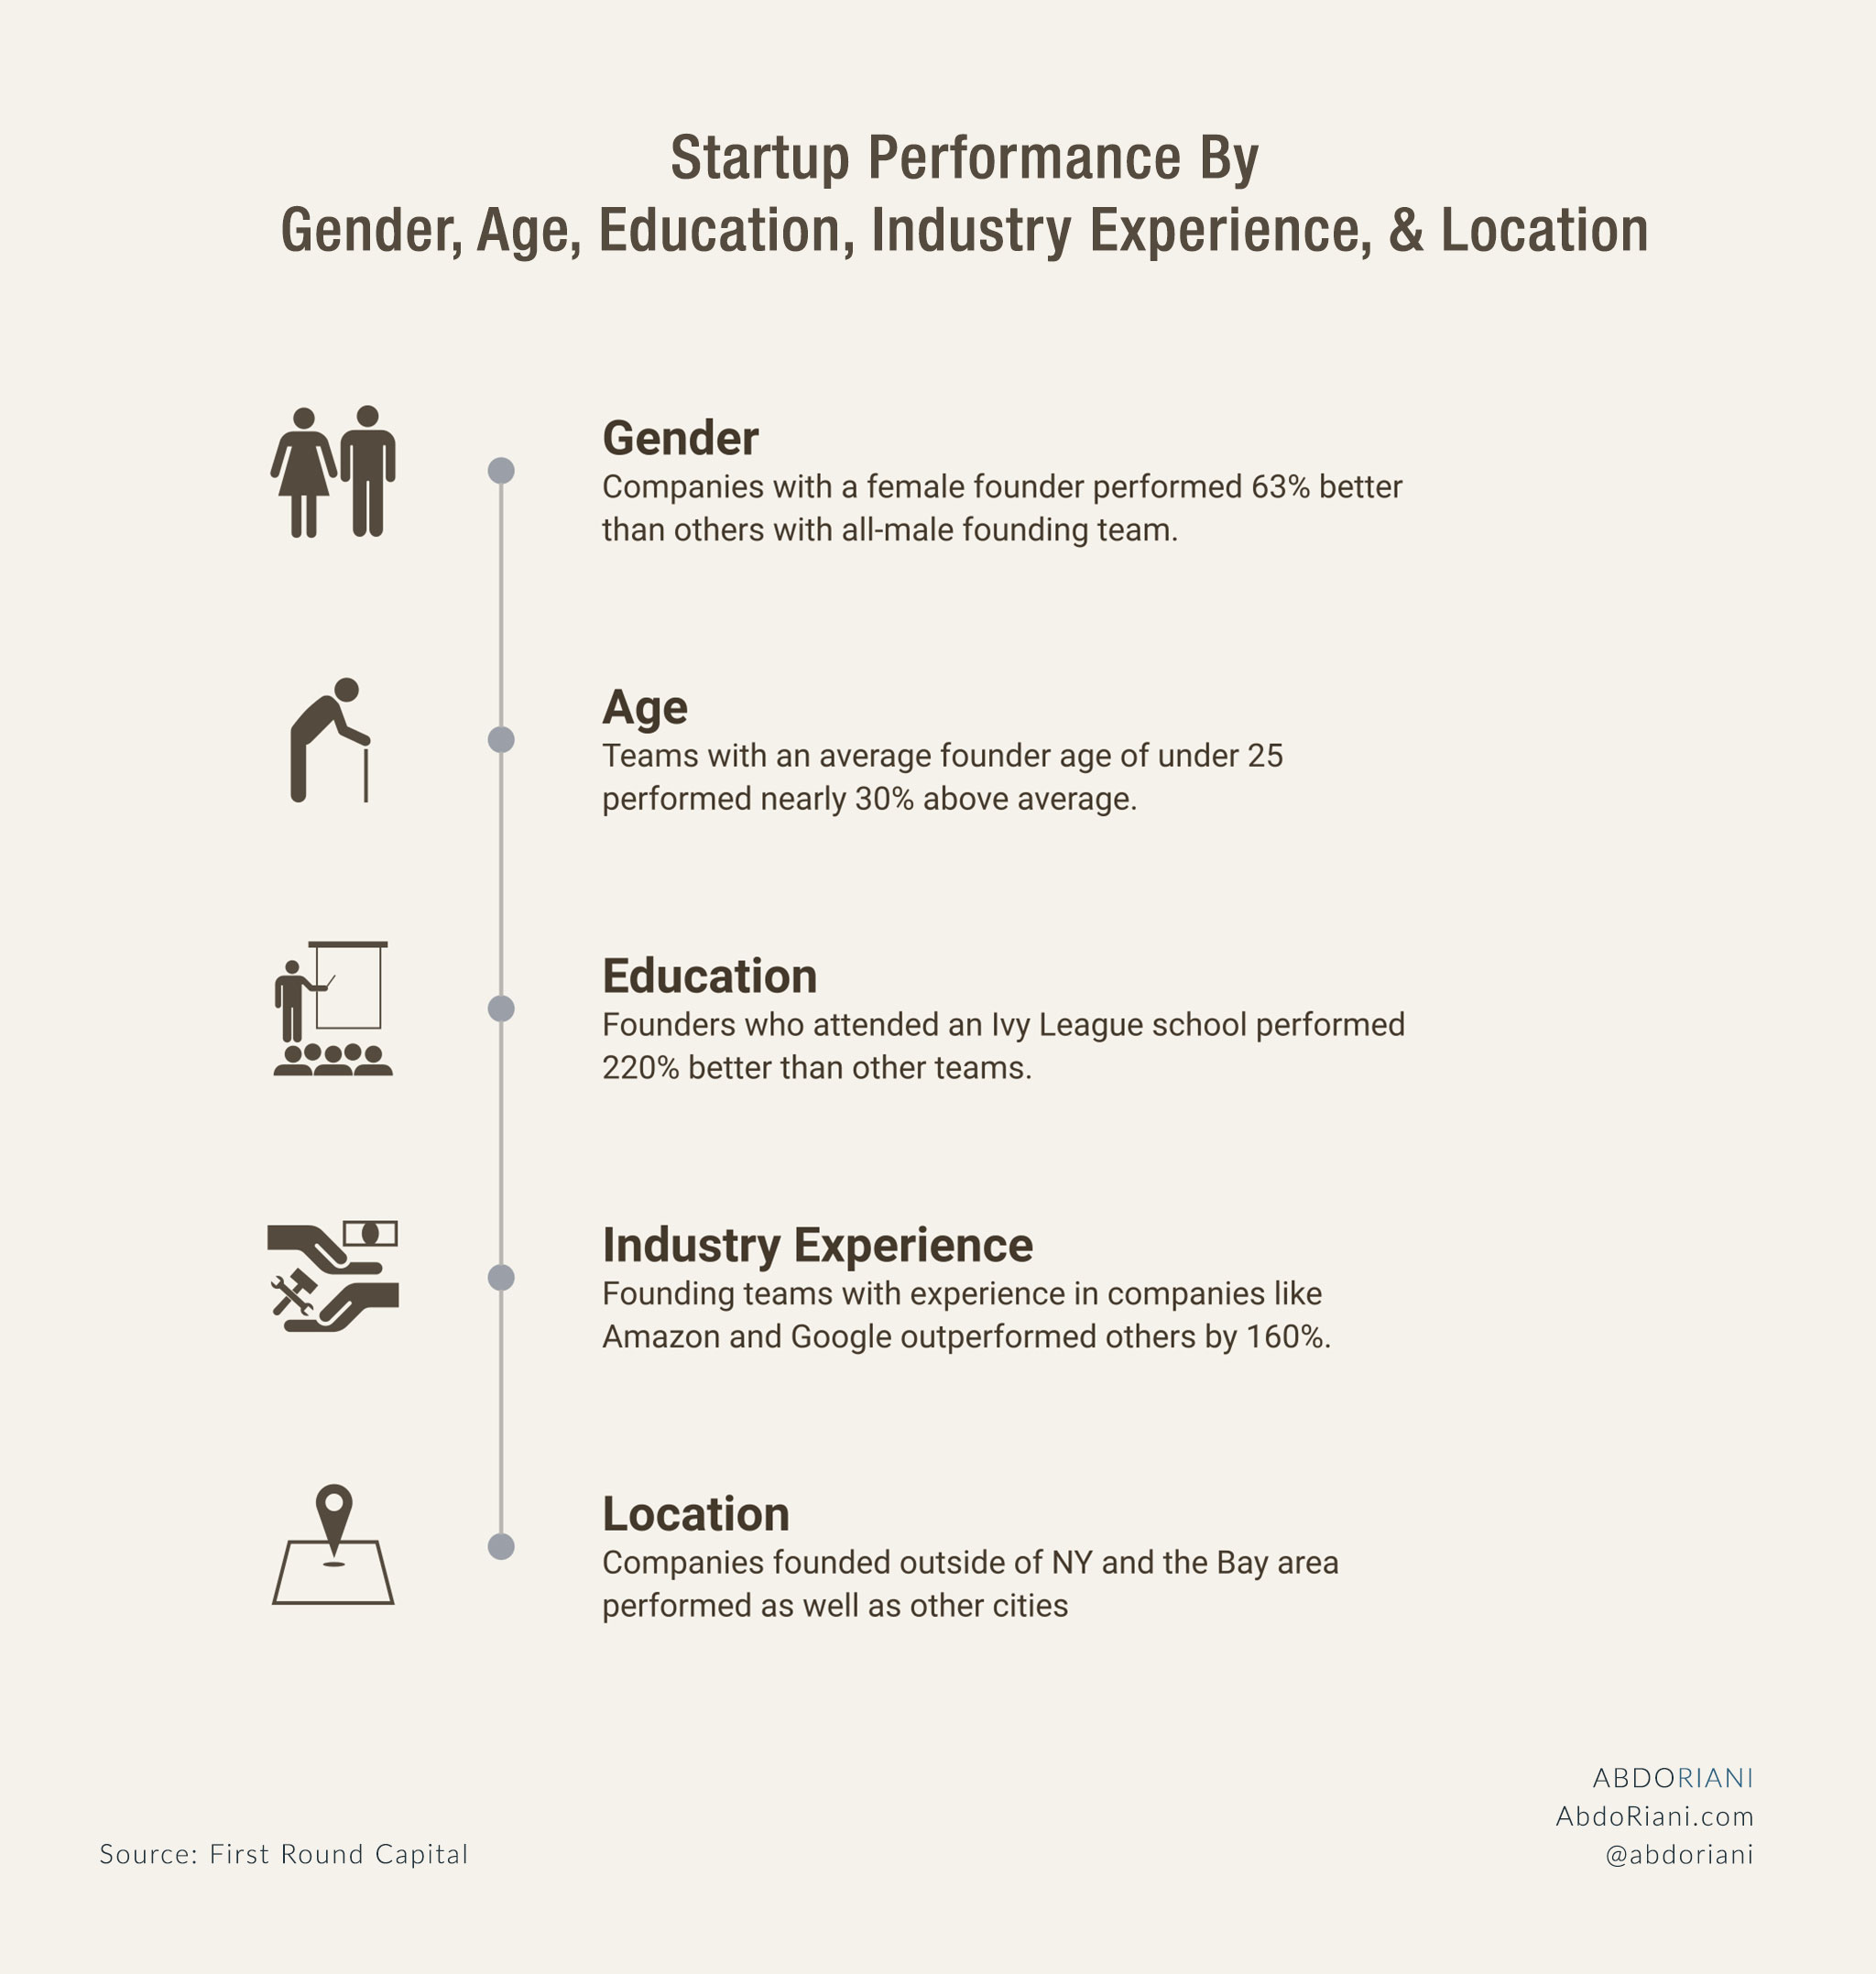 Startup Performance By Gender, Age, Education, Industry Experience, And Location